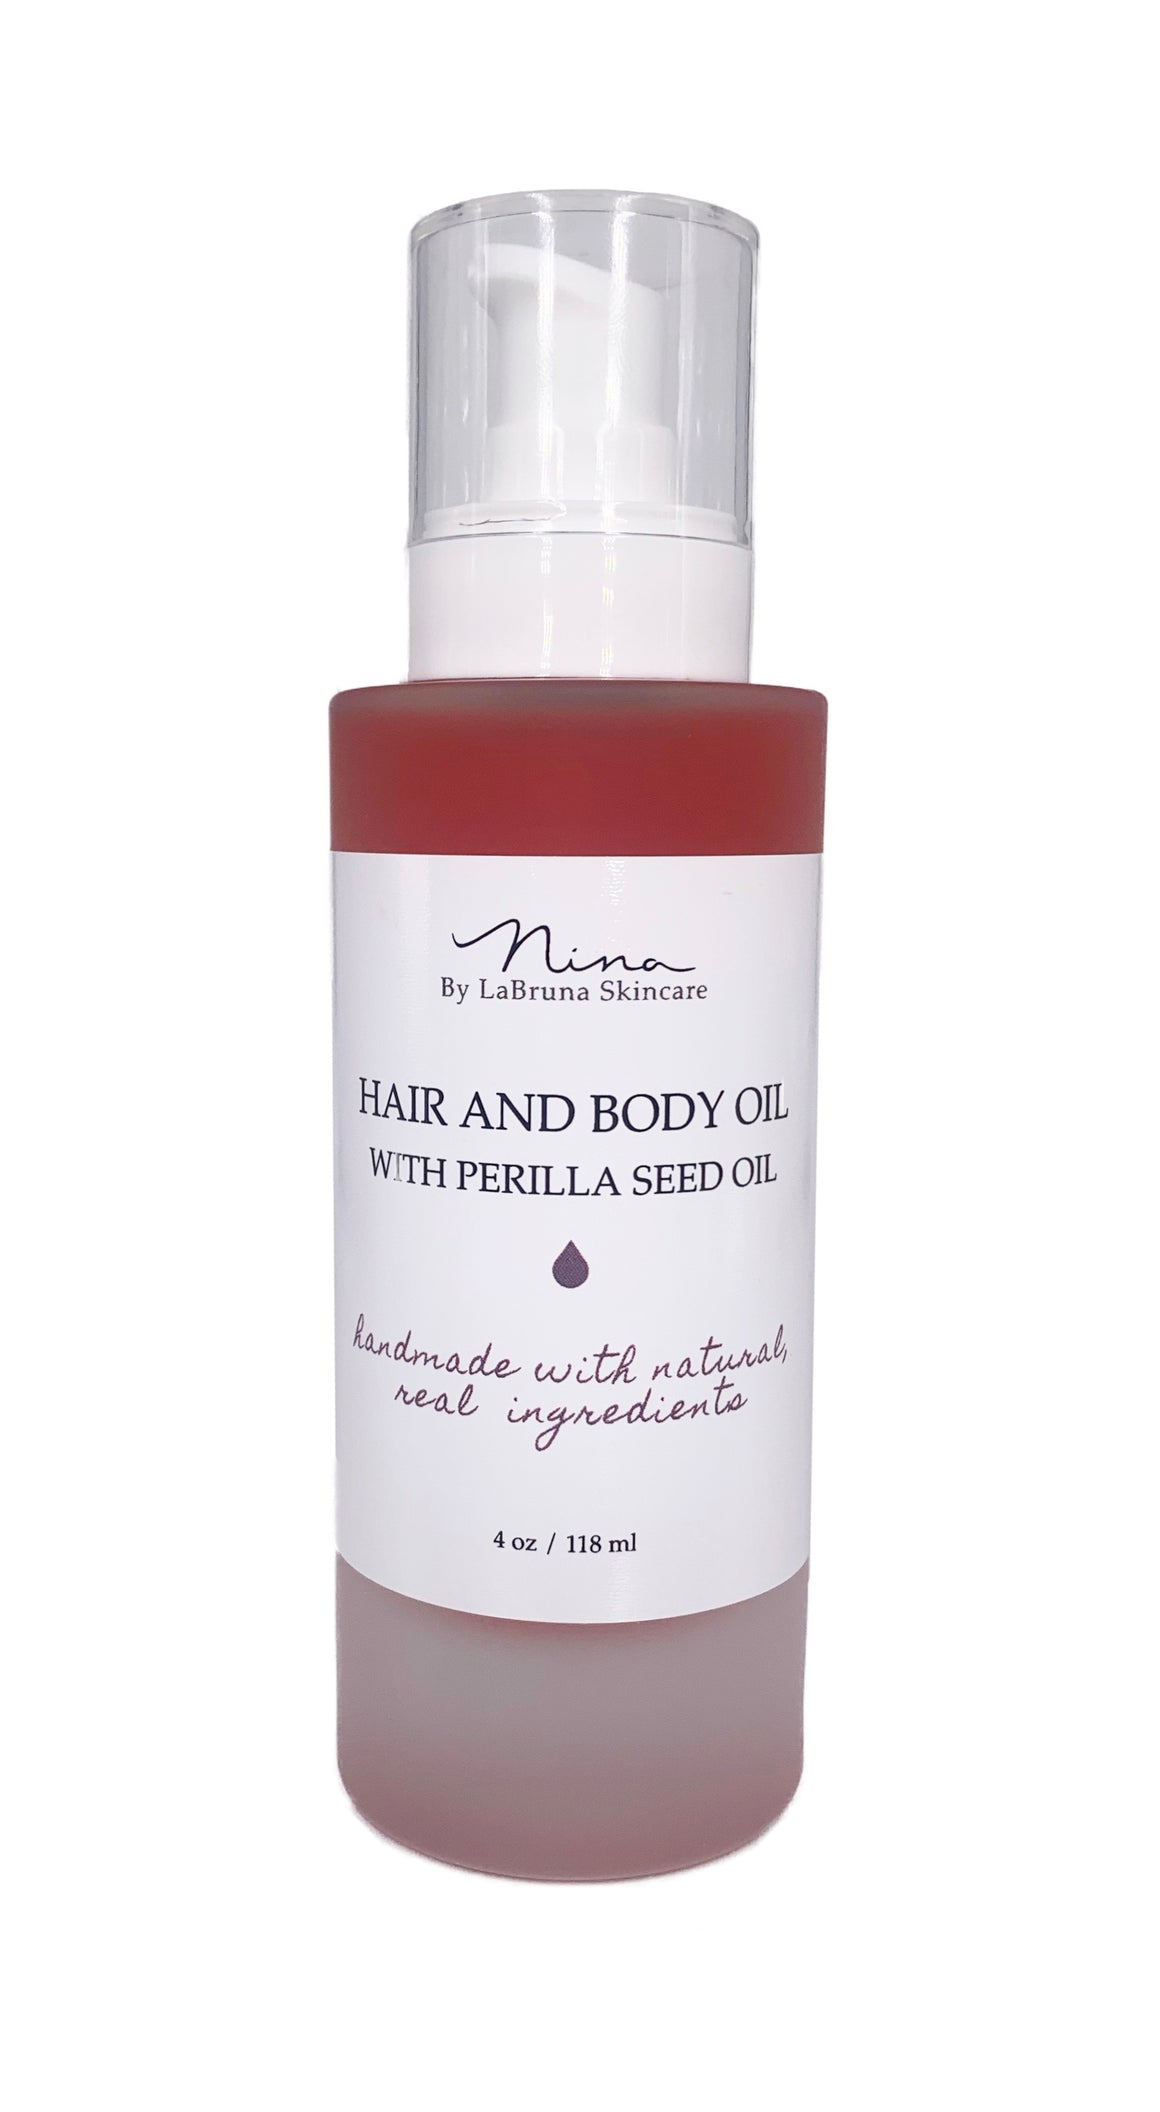 Hair and Body Oil with Perilla Seed Oil